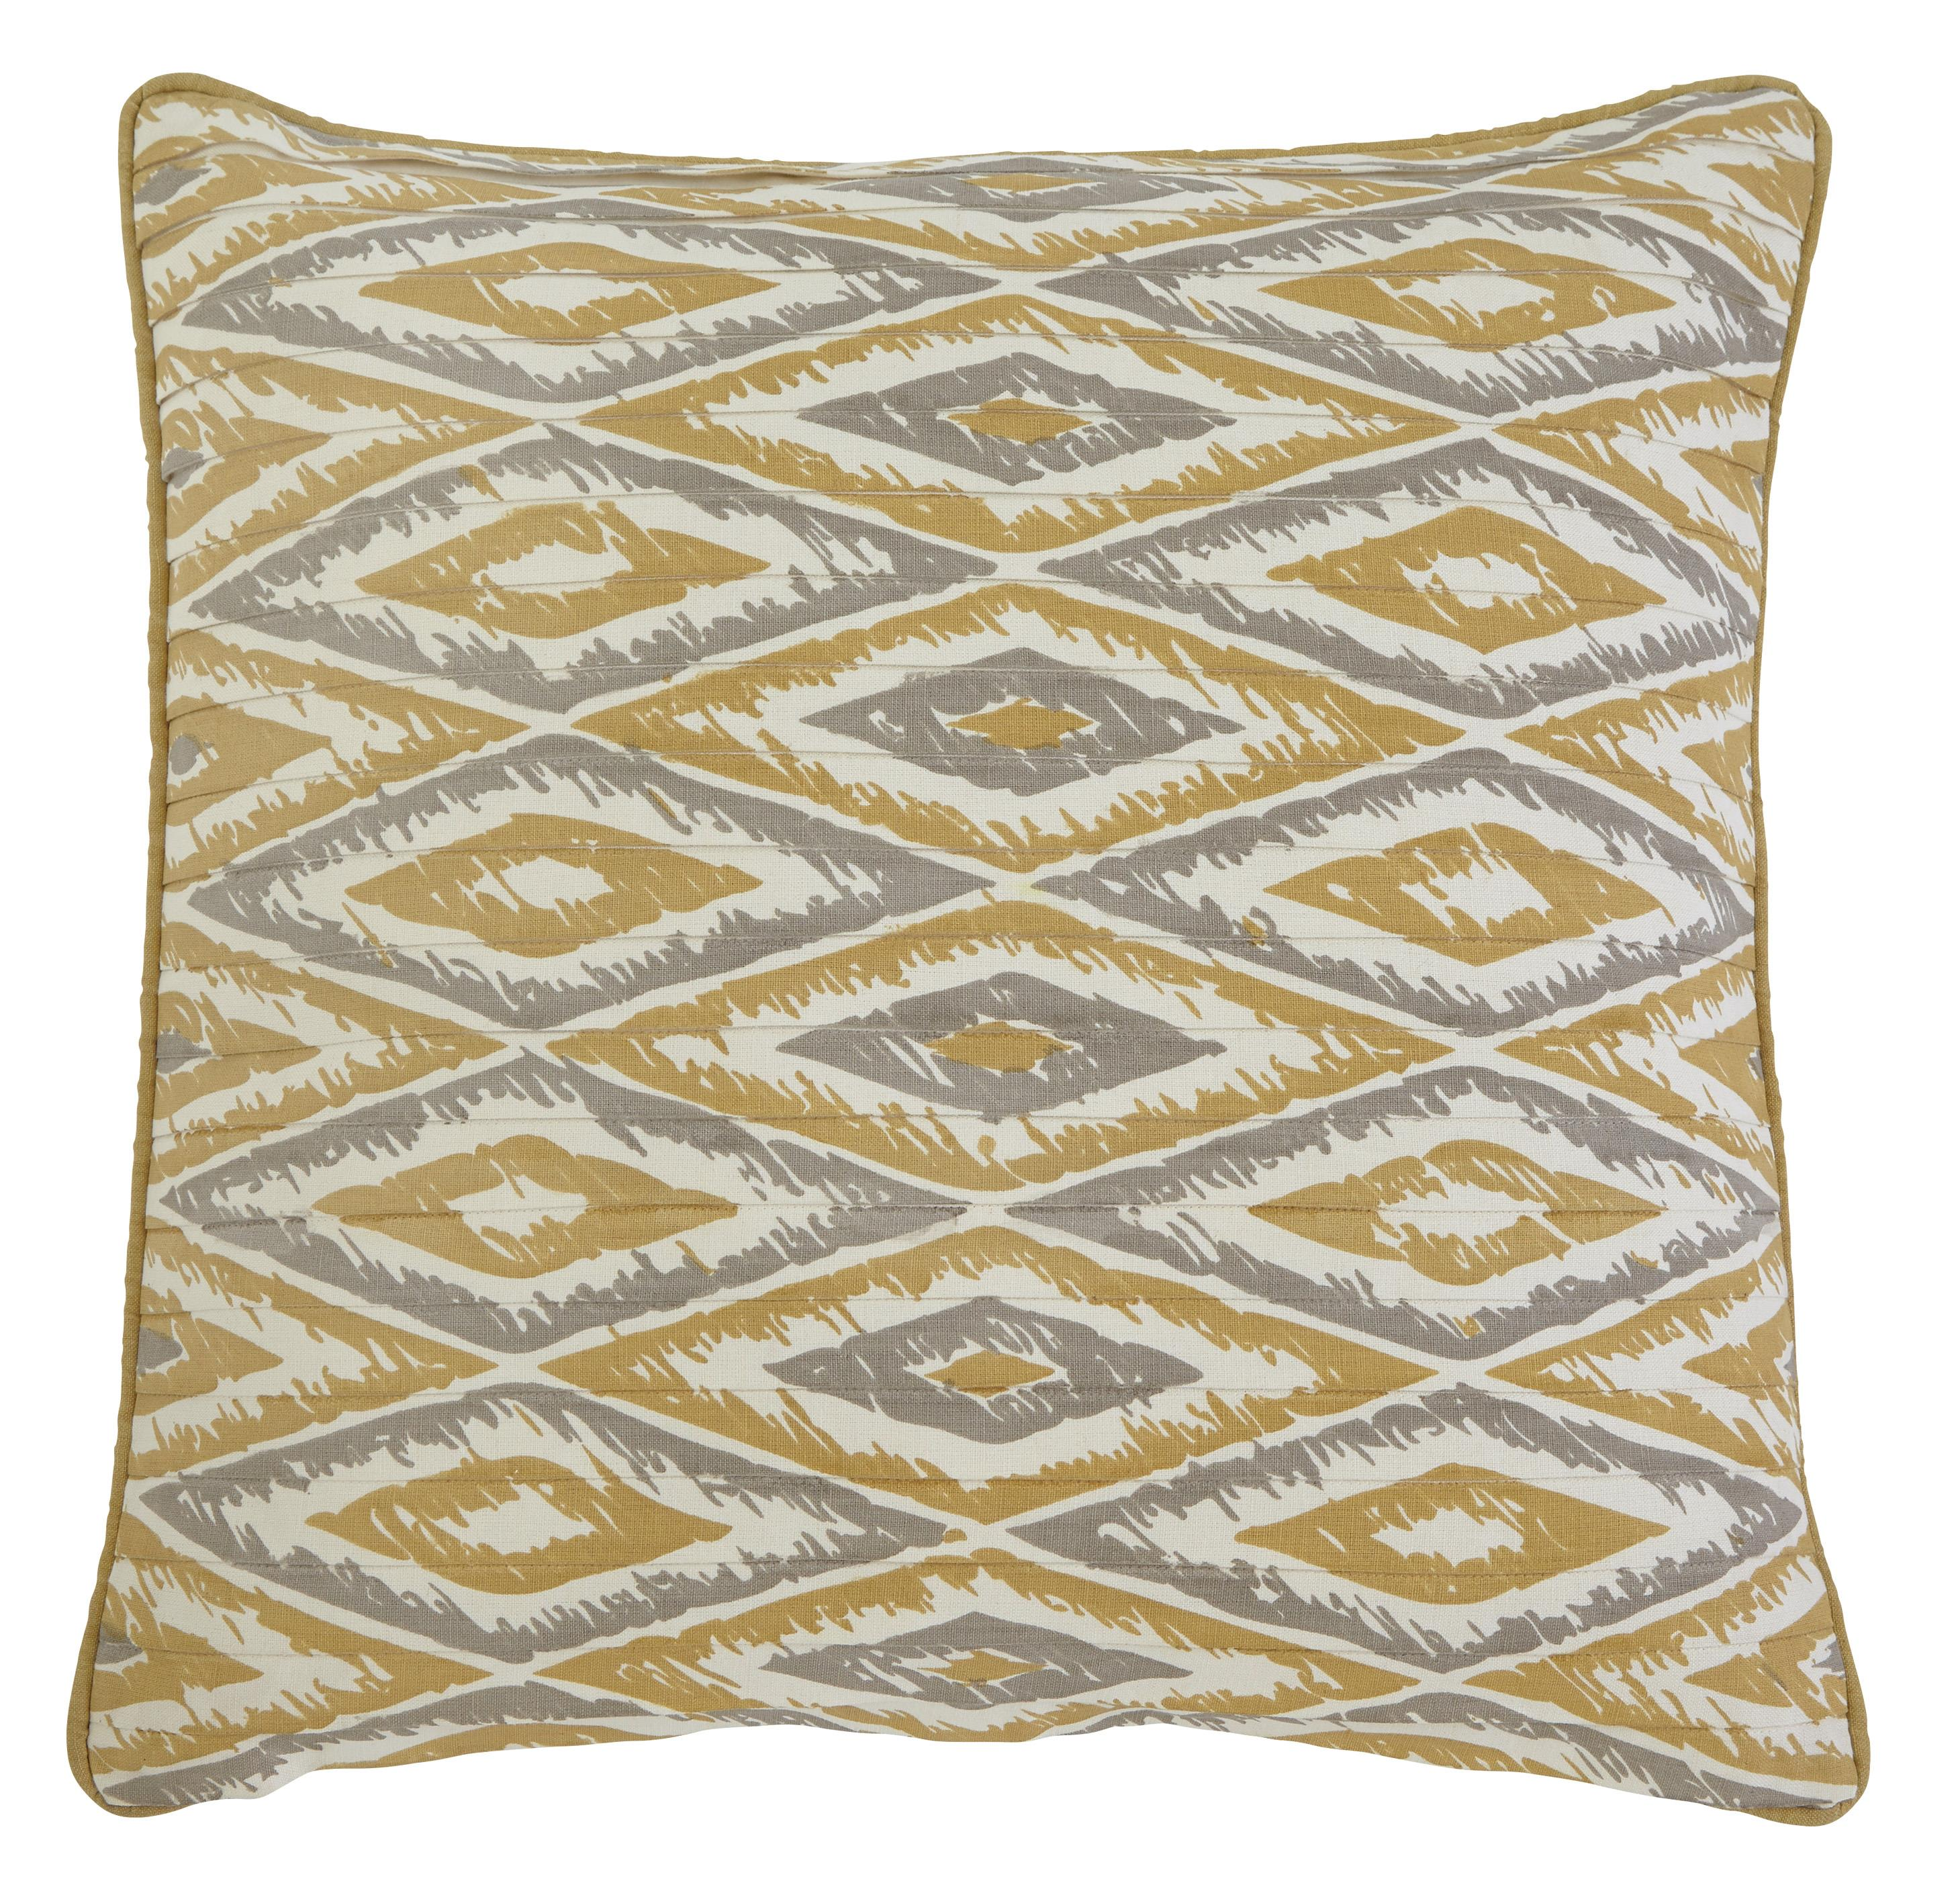 Signature Design by Ashley Pillows Stitched - Gold Pillow Cover - Item Number: A1000349P